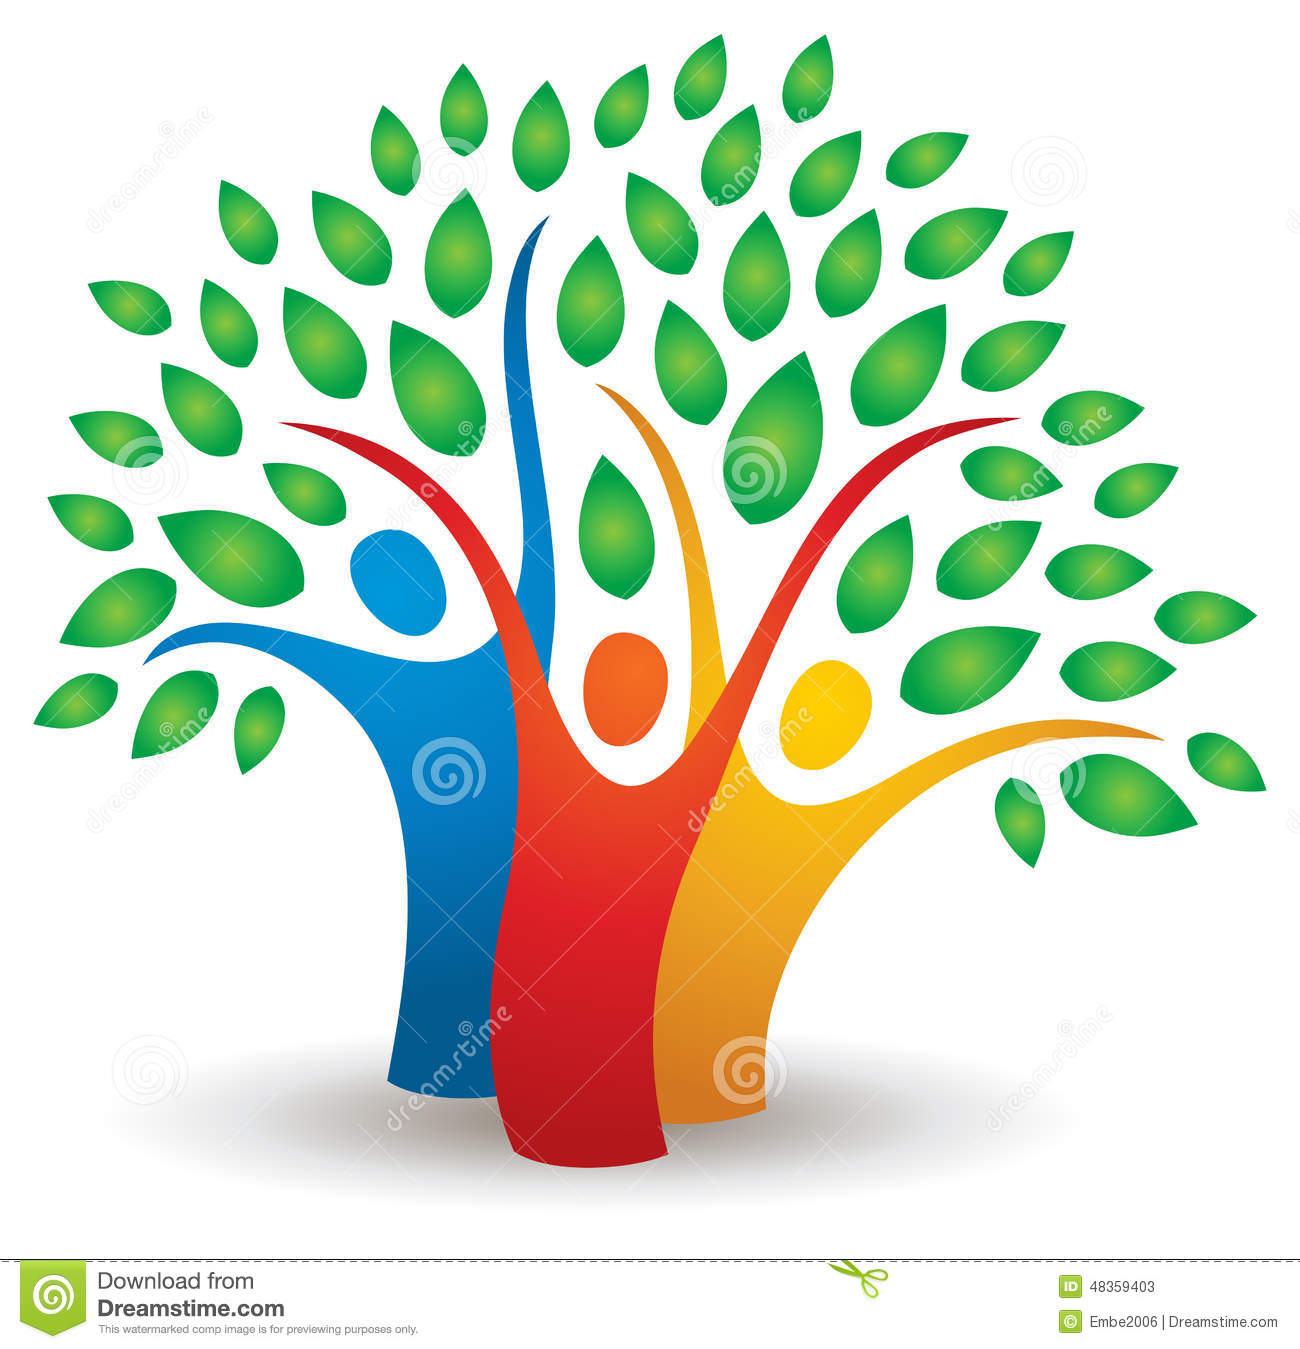 People Tree Logo Stock Vector - Image: 48359403